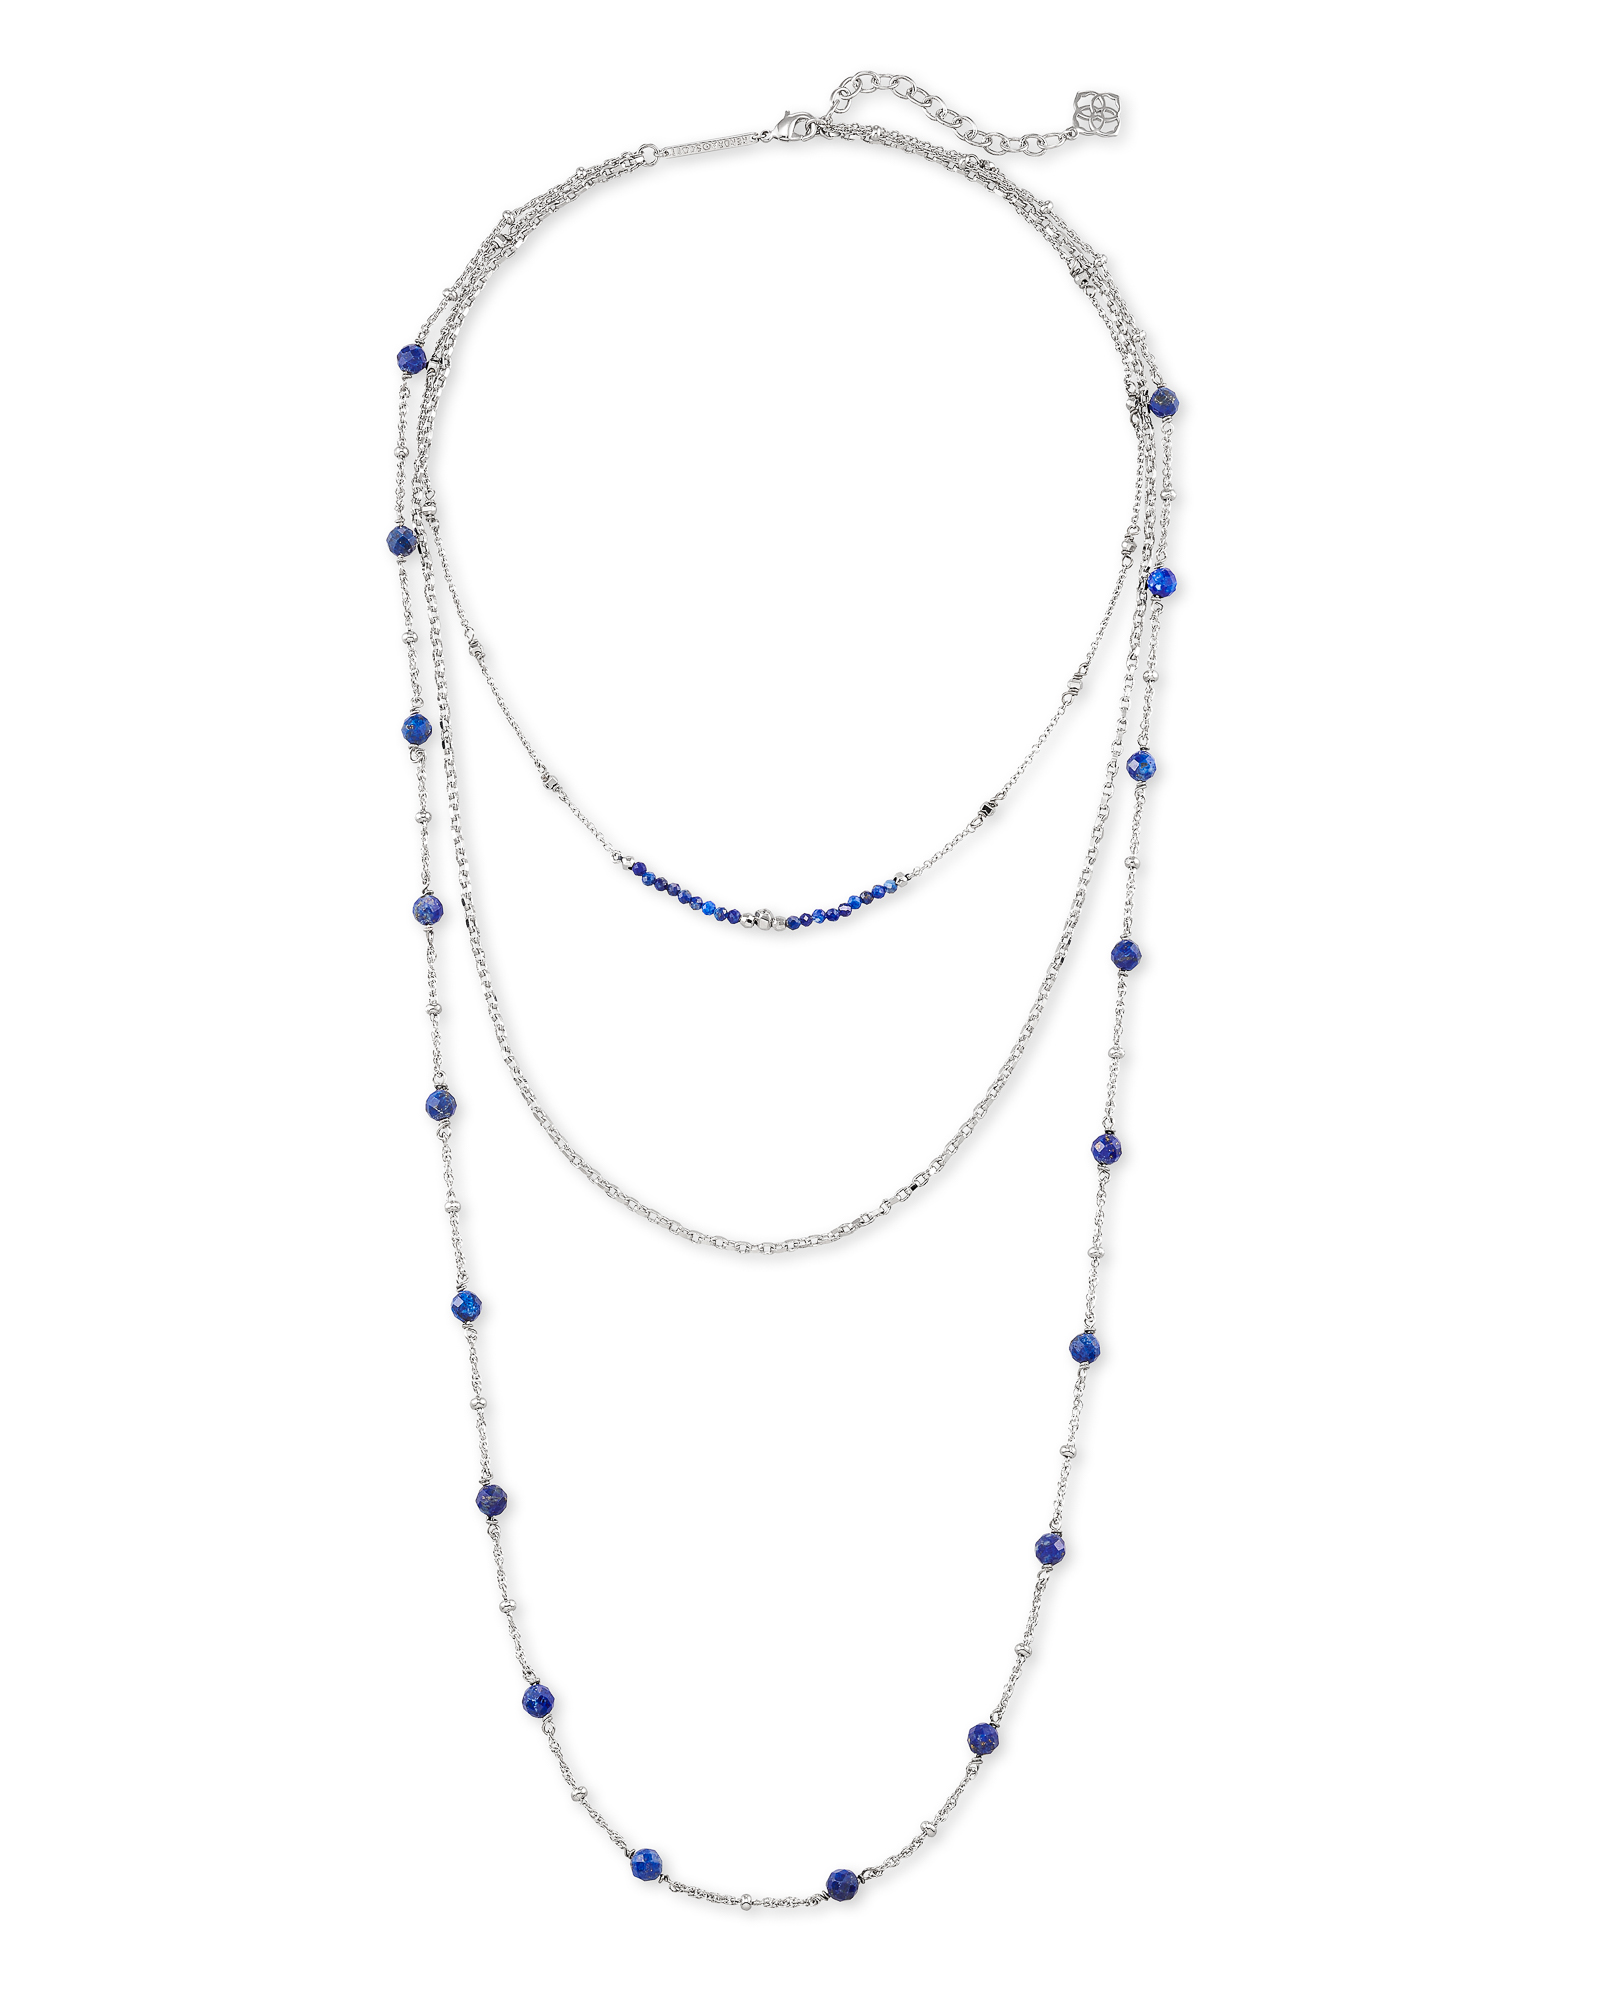 Scarlet Silver Multi Strand Necklace in Blue Lapis